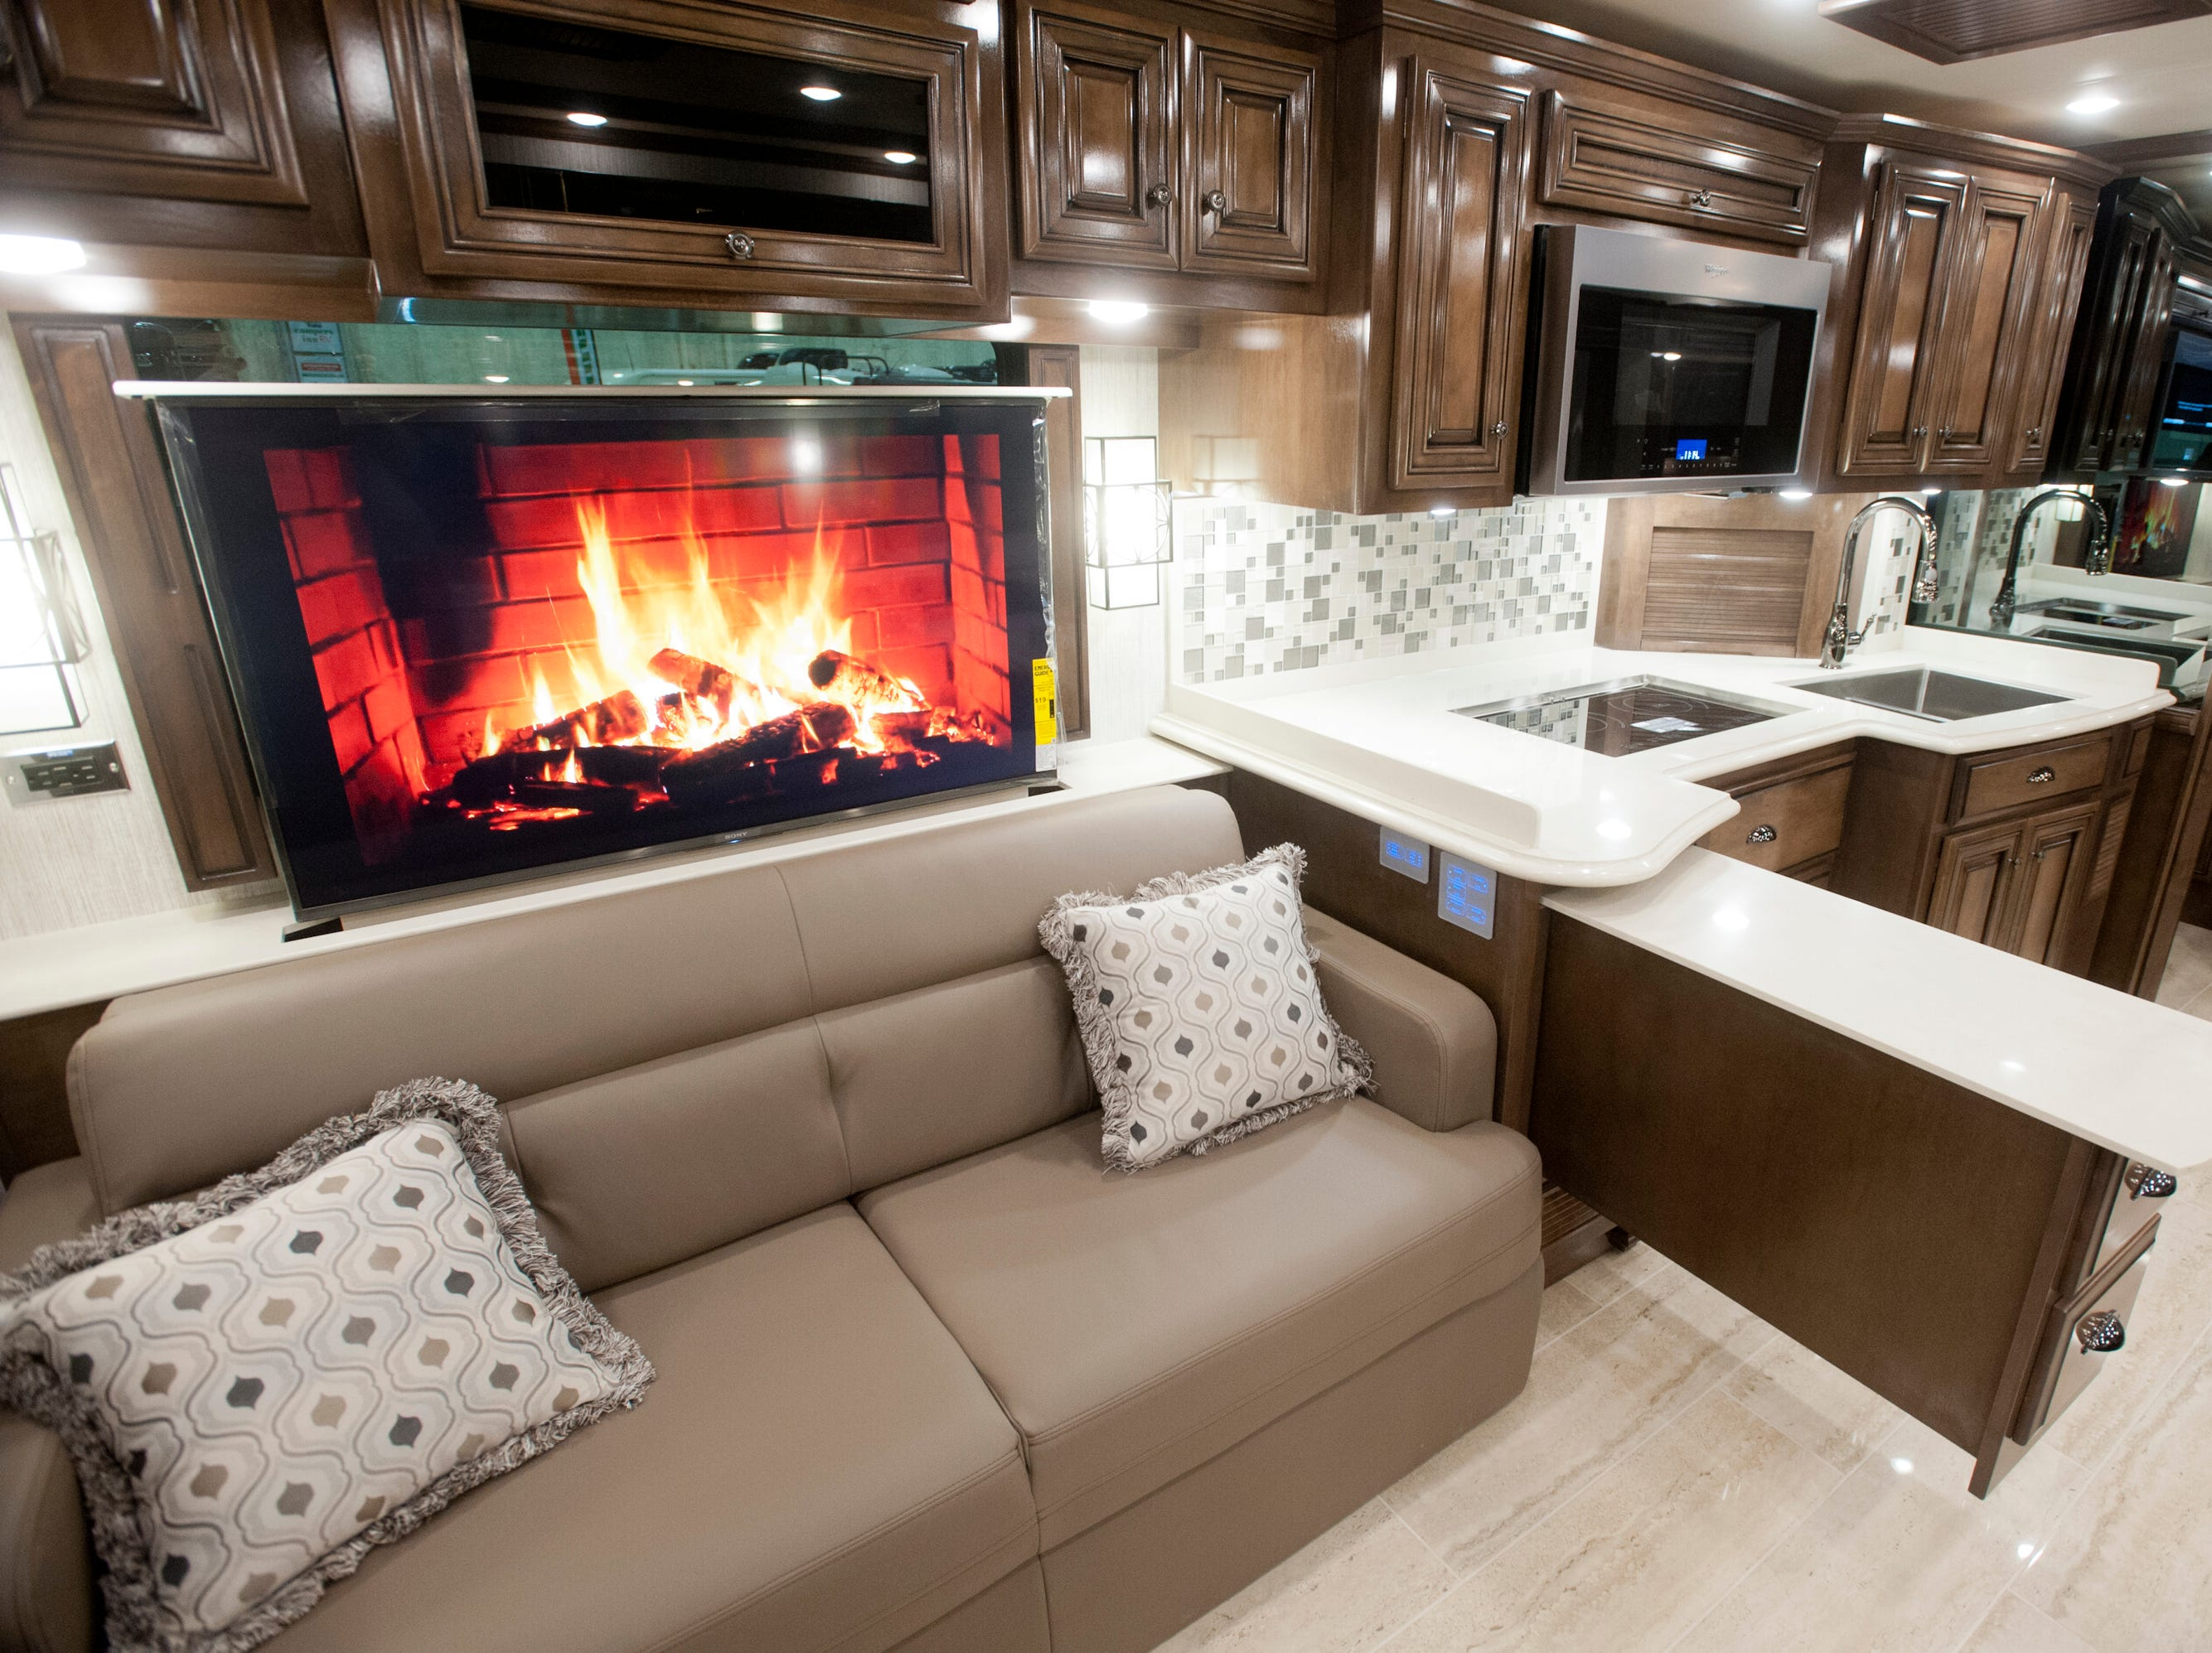 A television above one of the living room couches plays a video of a fireplace. At right is the coach's kitchen area.11 December 2018